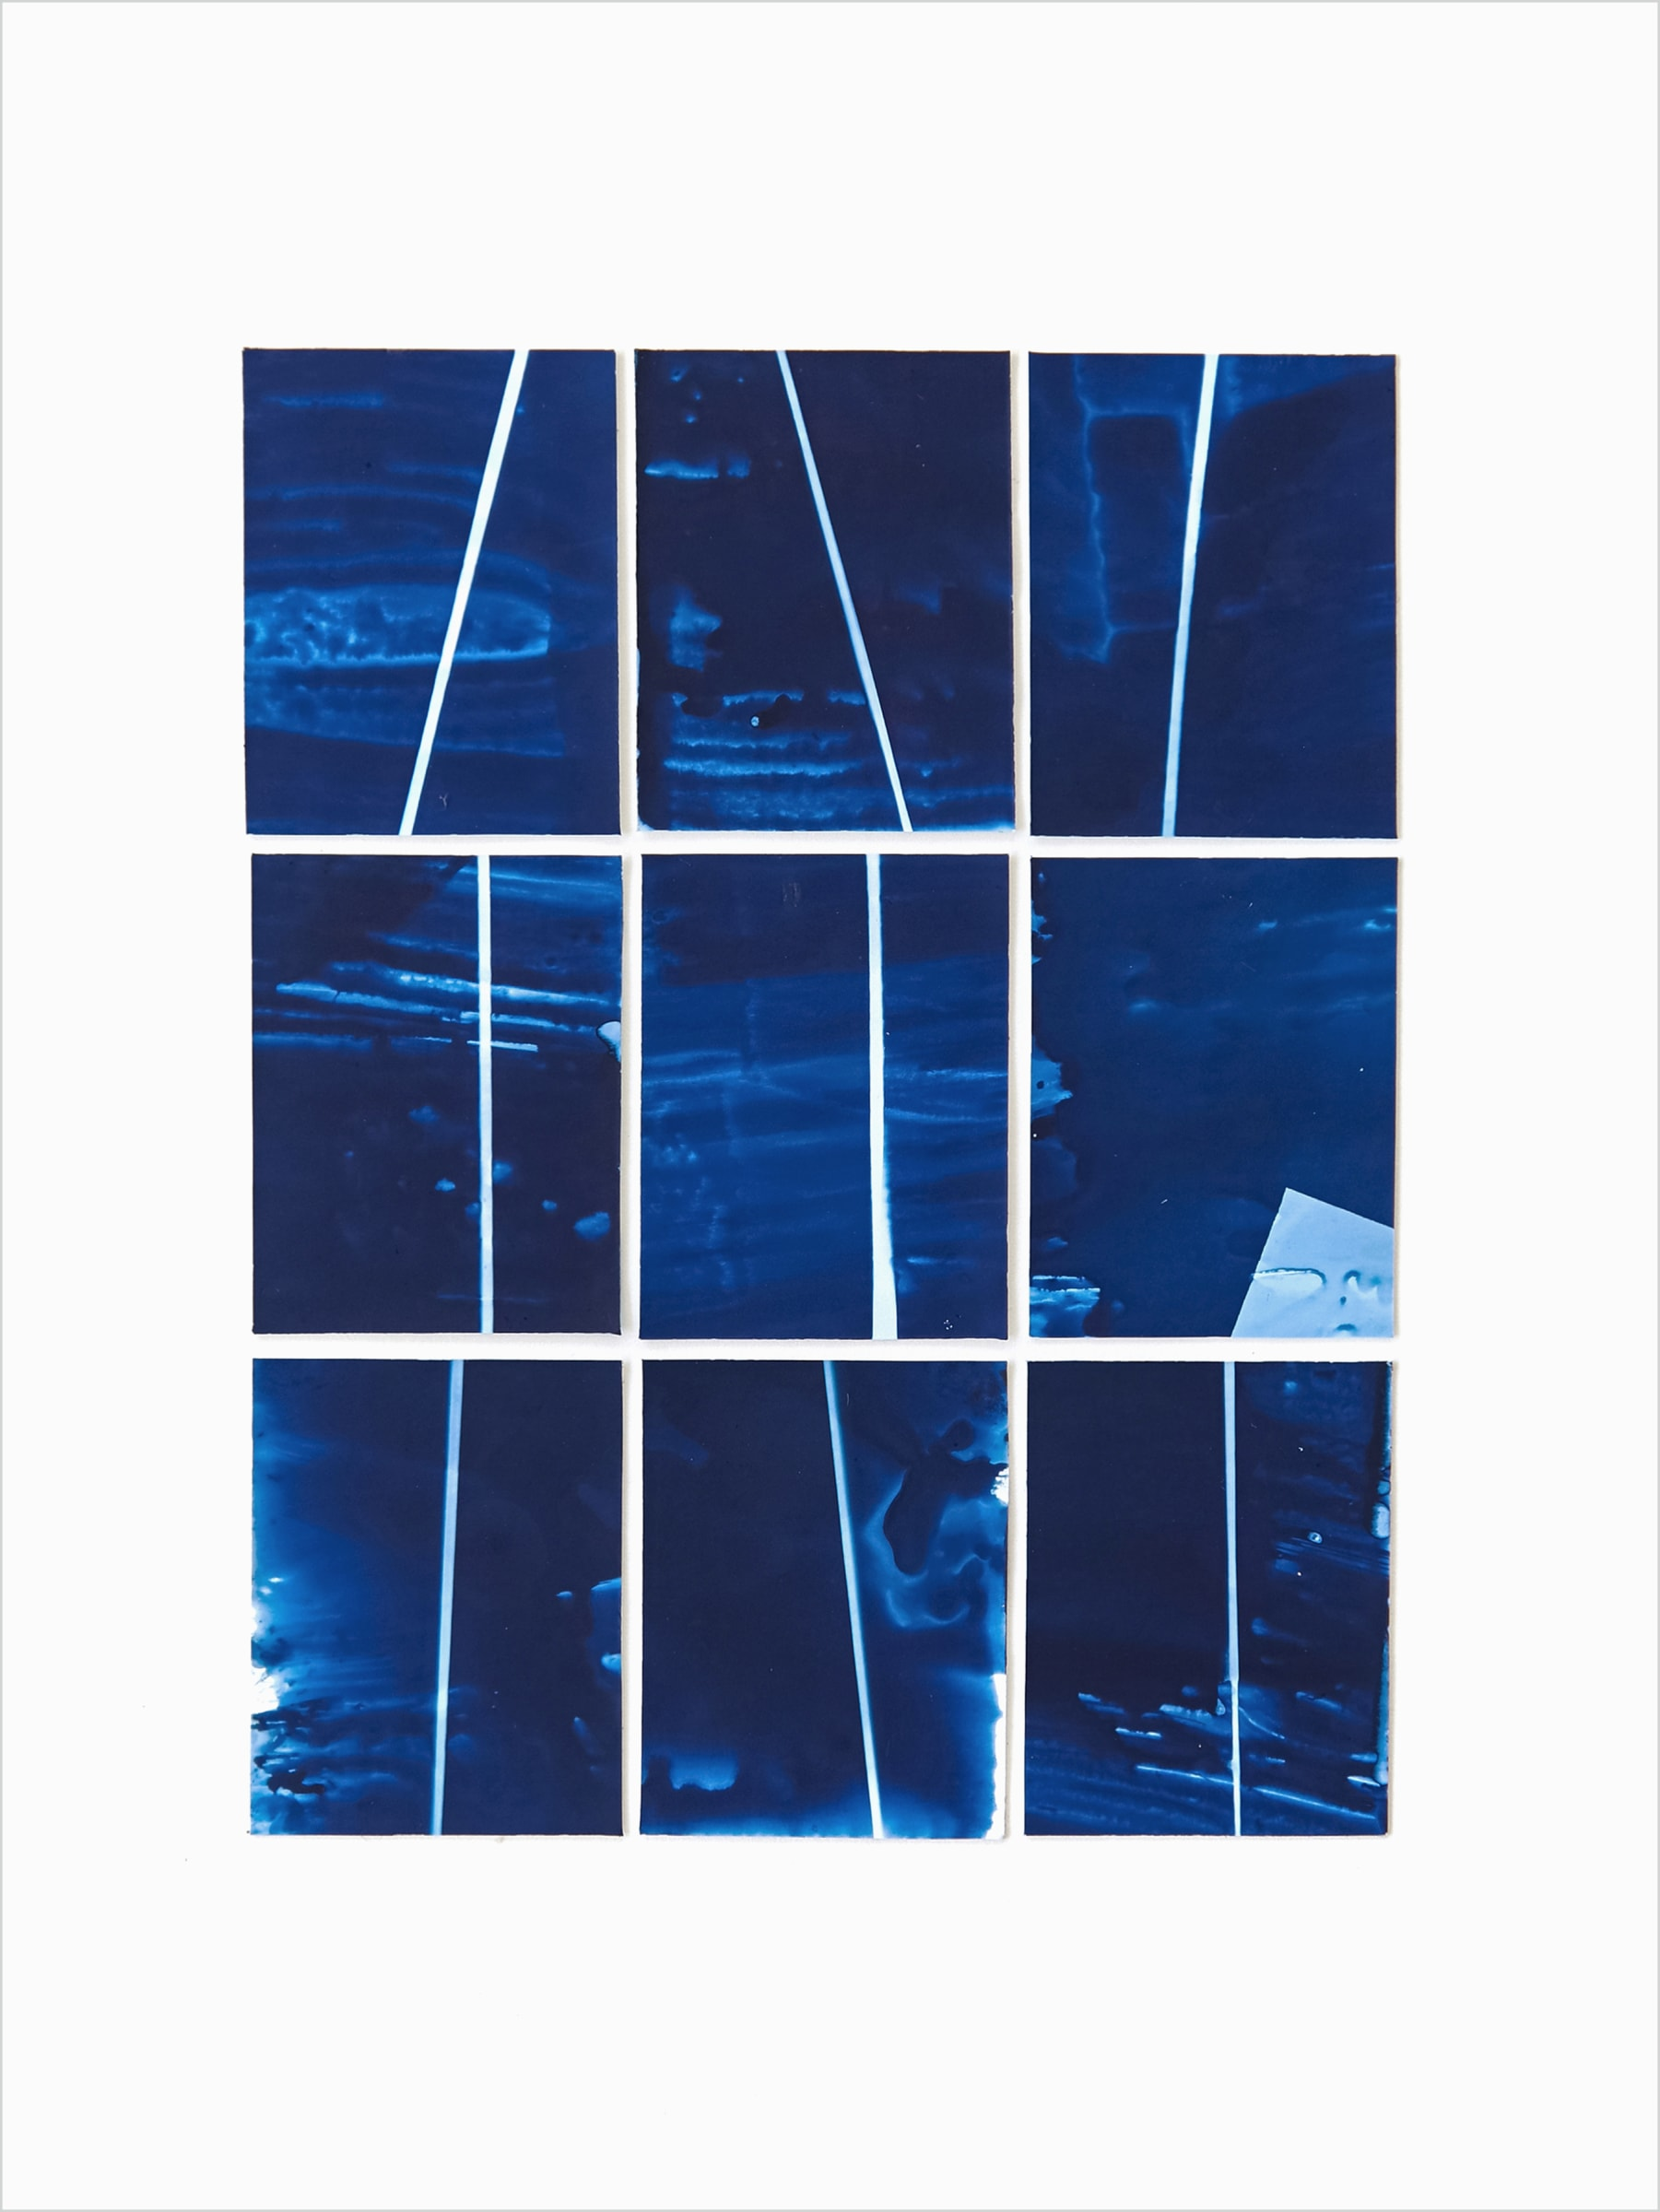 """<span class=""""link fancybox-details-link""""><a href=""""/artists/34-joanne-dugan/works/521-joanne-dugan-dune-shack-cyanotypes-4-2019/"""">View Detail Page</a></span><div class=""""artist""""><strong>Joanne Dugan</strong></div> <div class=""""title""""><em>Dune Shack Cyanotypes, #4</em>, 2019</div> <div class=""""medium"""">Cyanotype</div> <div class=""""dimensions"""">12 x 9 inches</div>"""